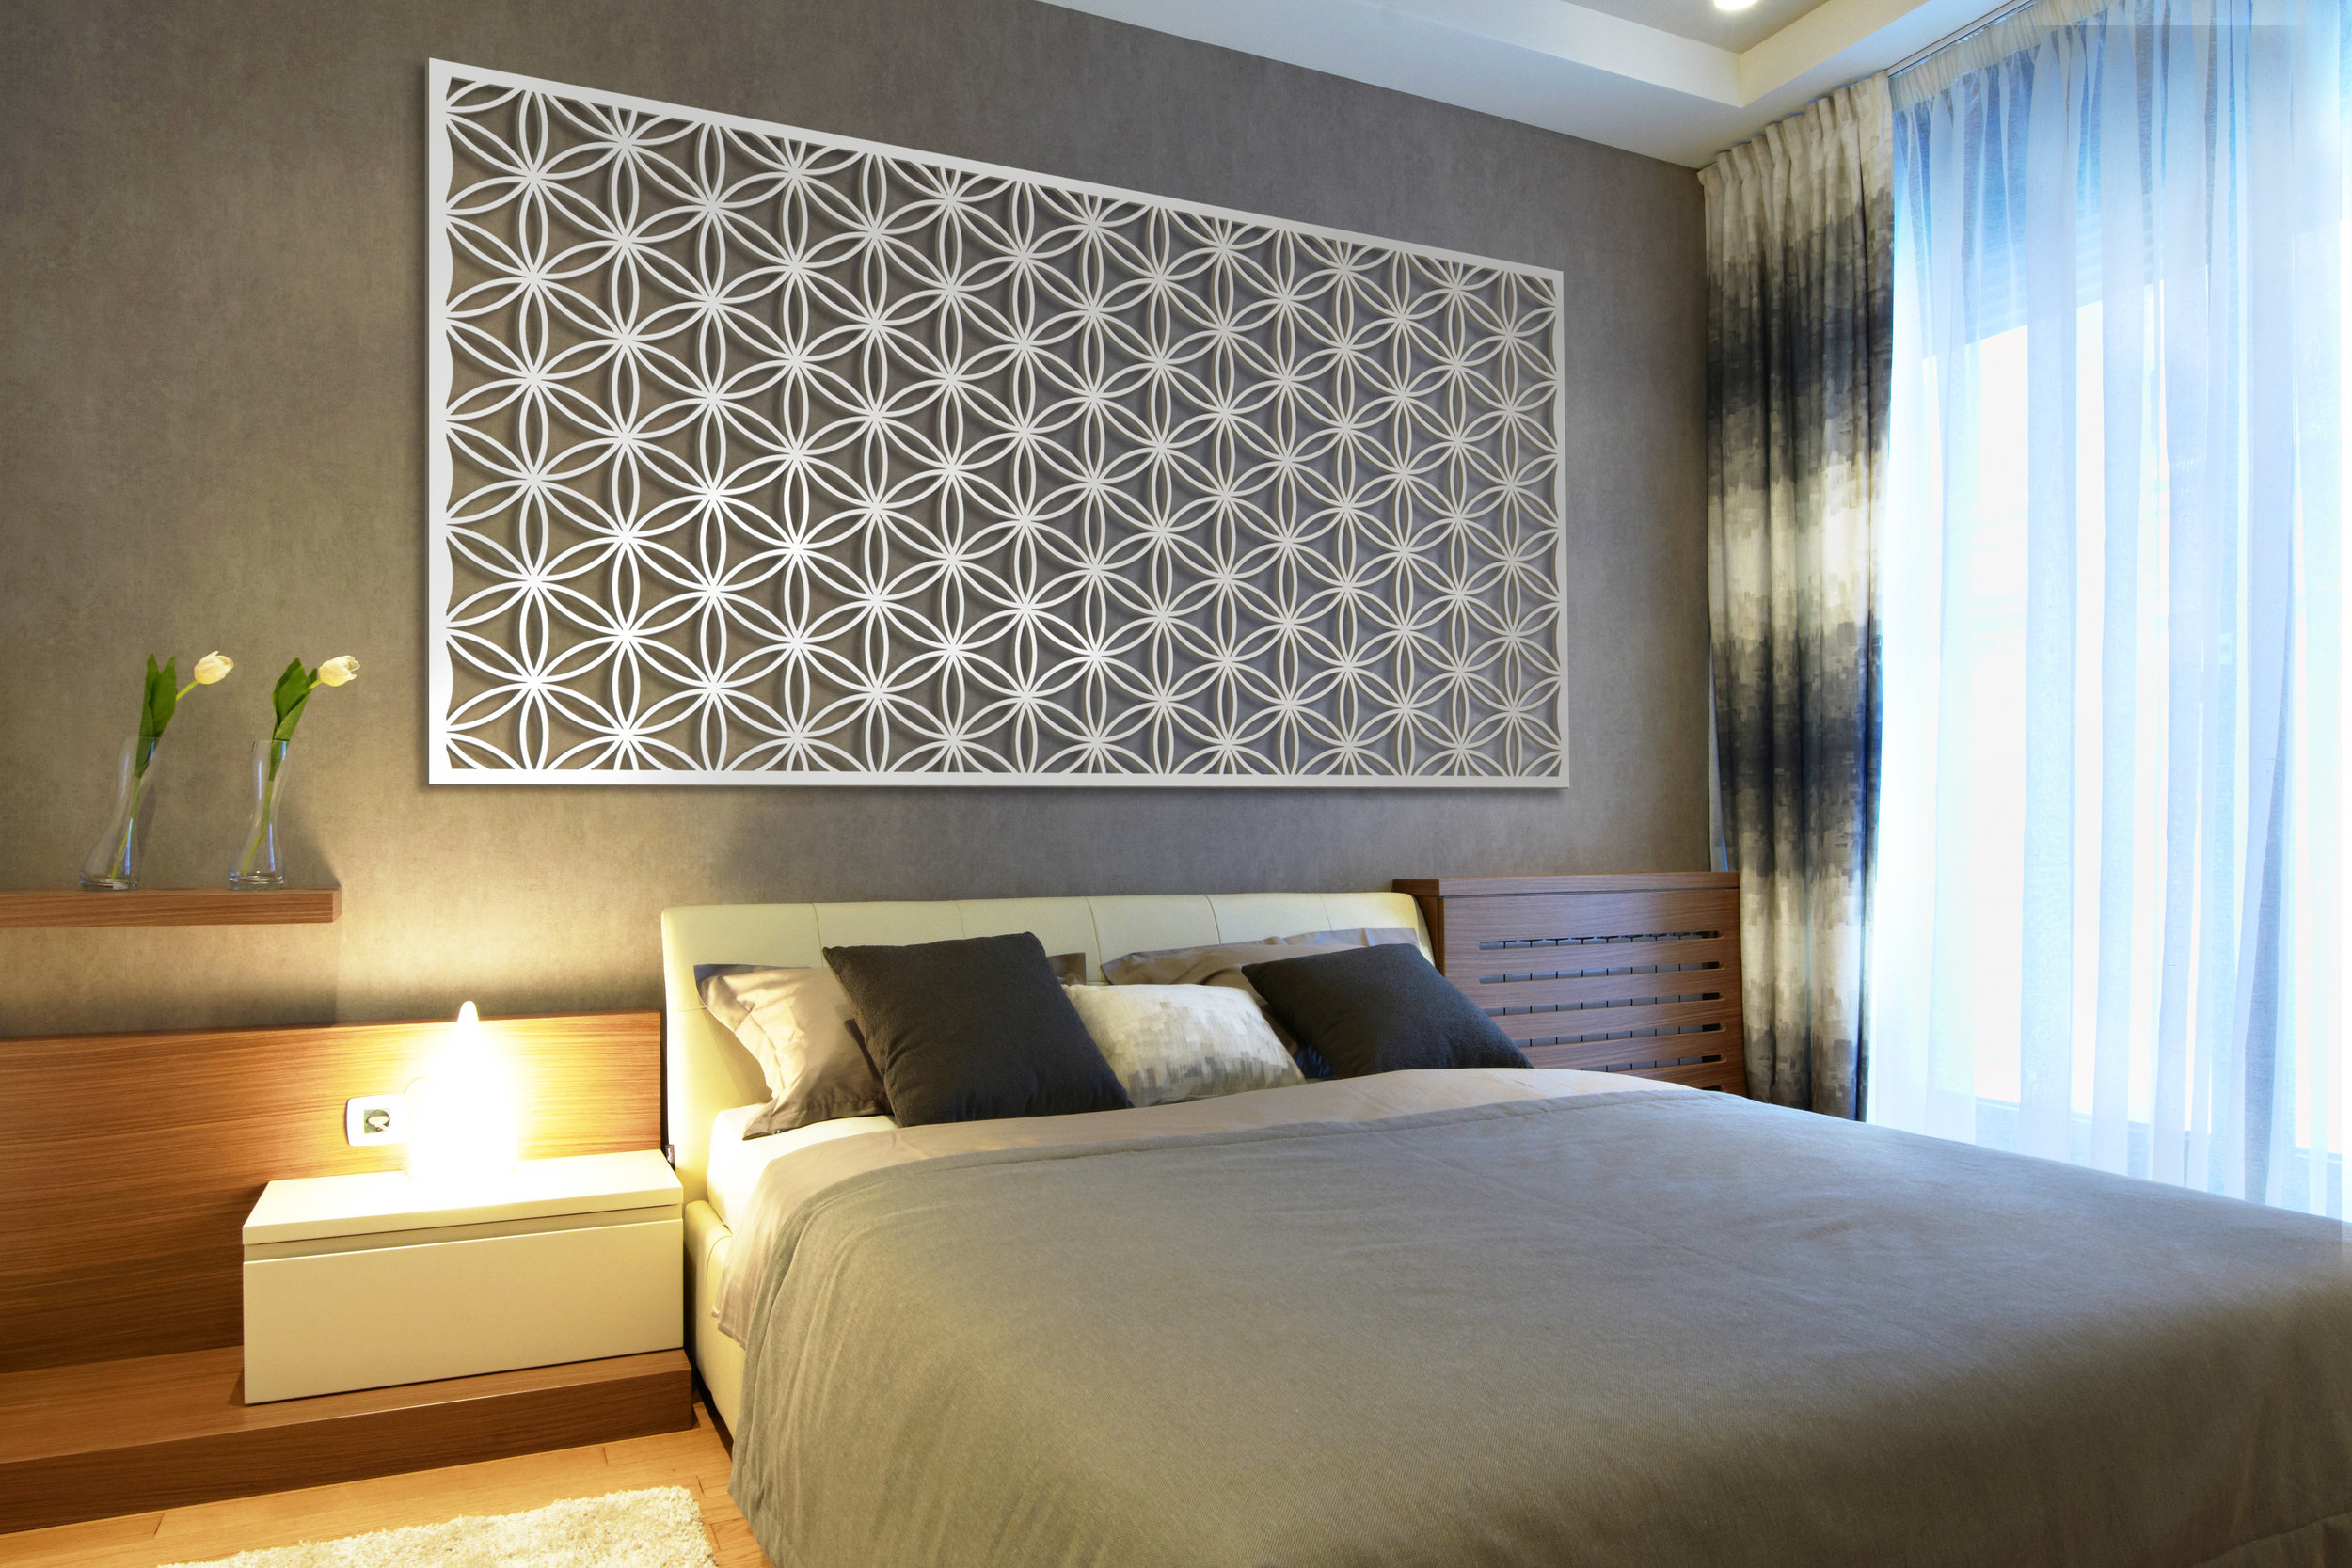 Installation Rendering C   Flower of Life decorative hotel wall panel - painted